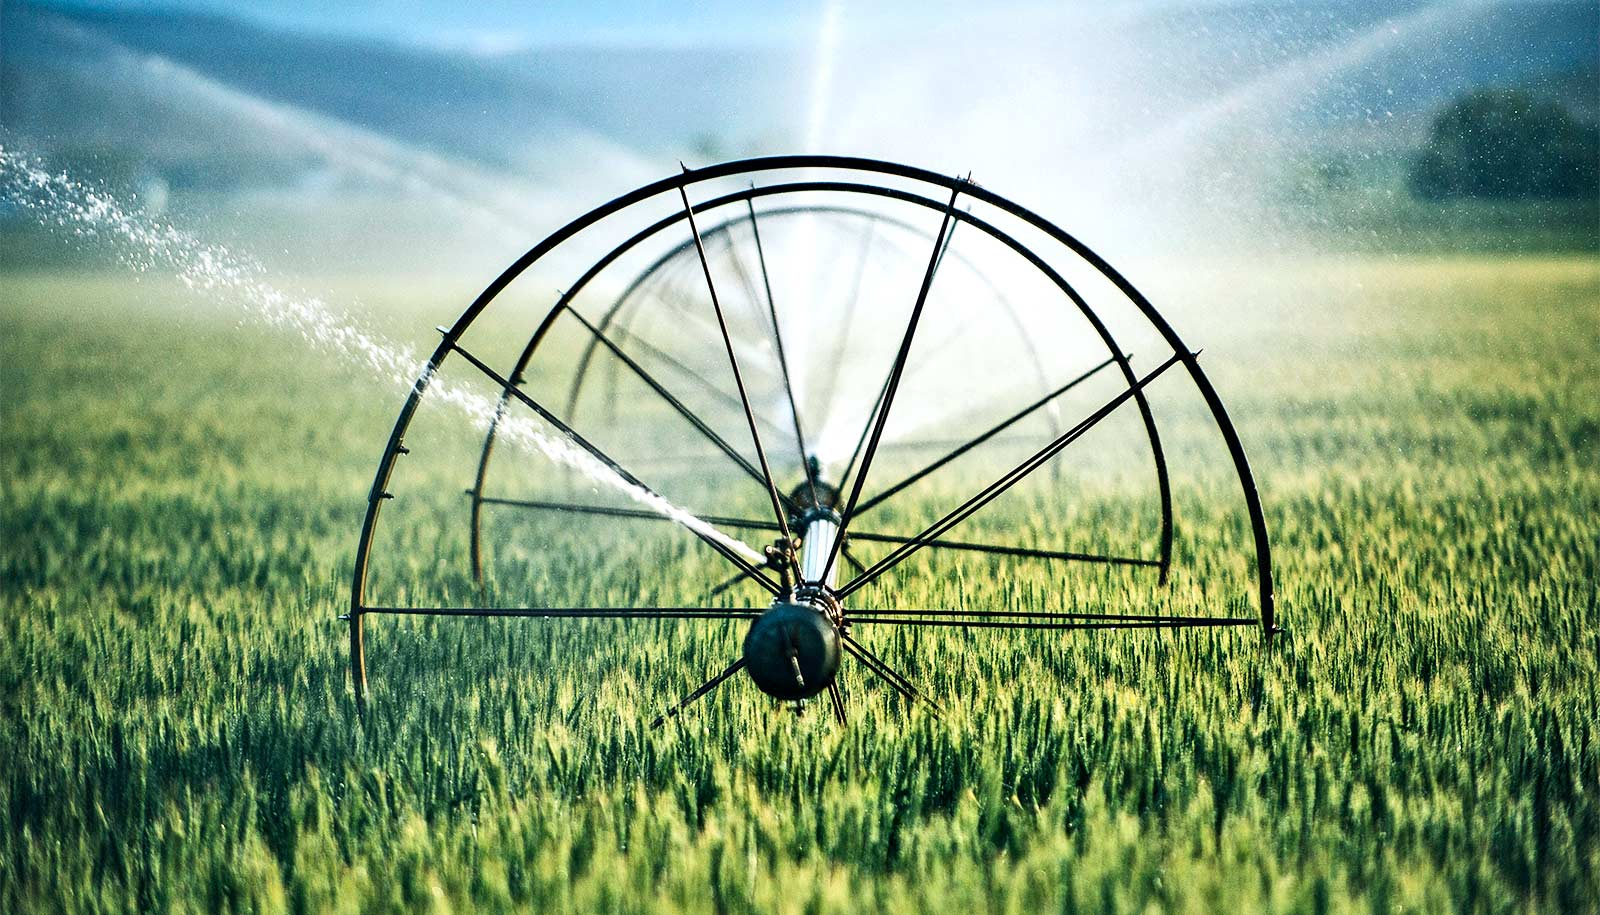 Irrigation keeps things cool in extreme heat